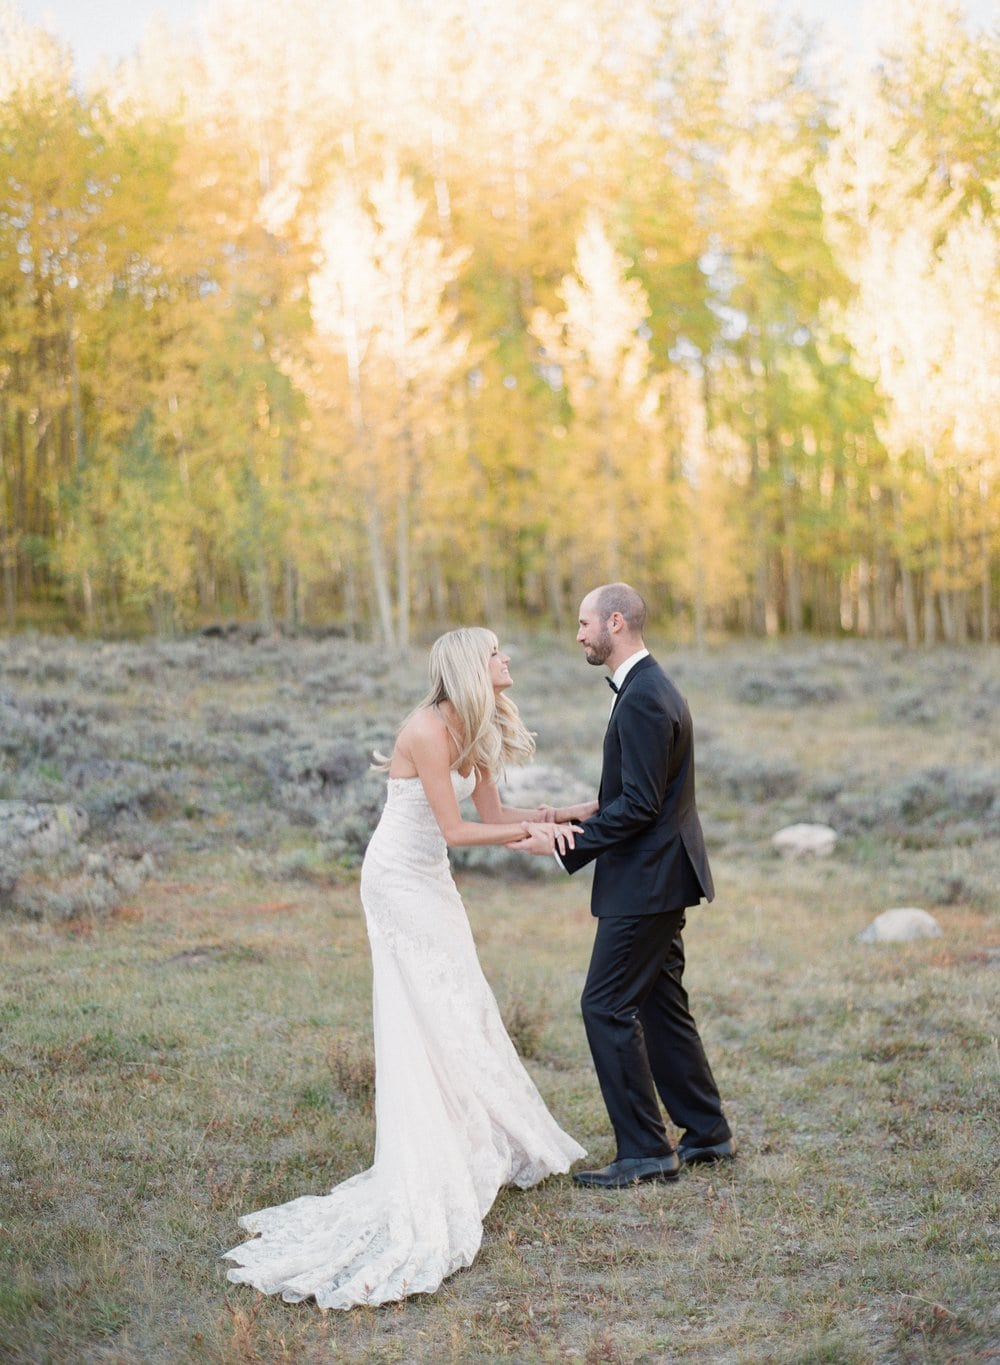 fine+art+photo+of+bride+and+groom+playfully+holding+hands+in+aspen+grove.jpg